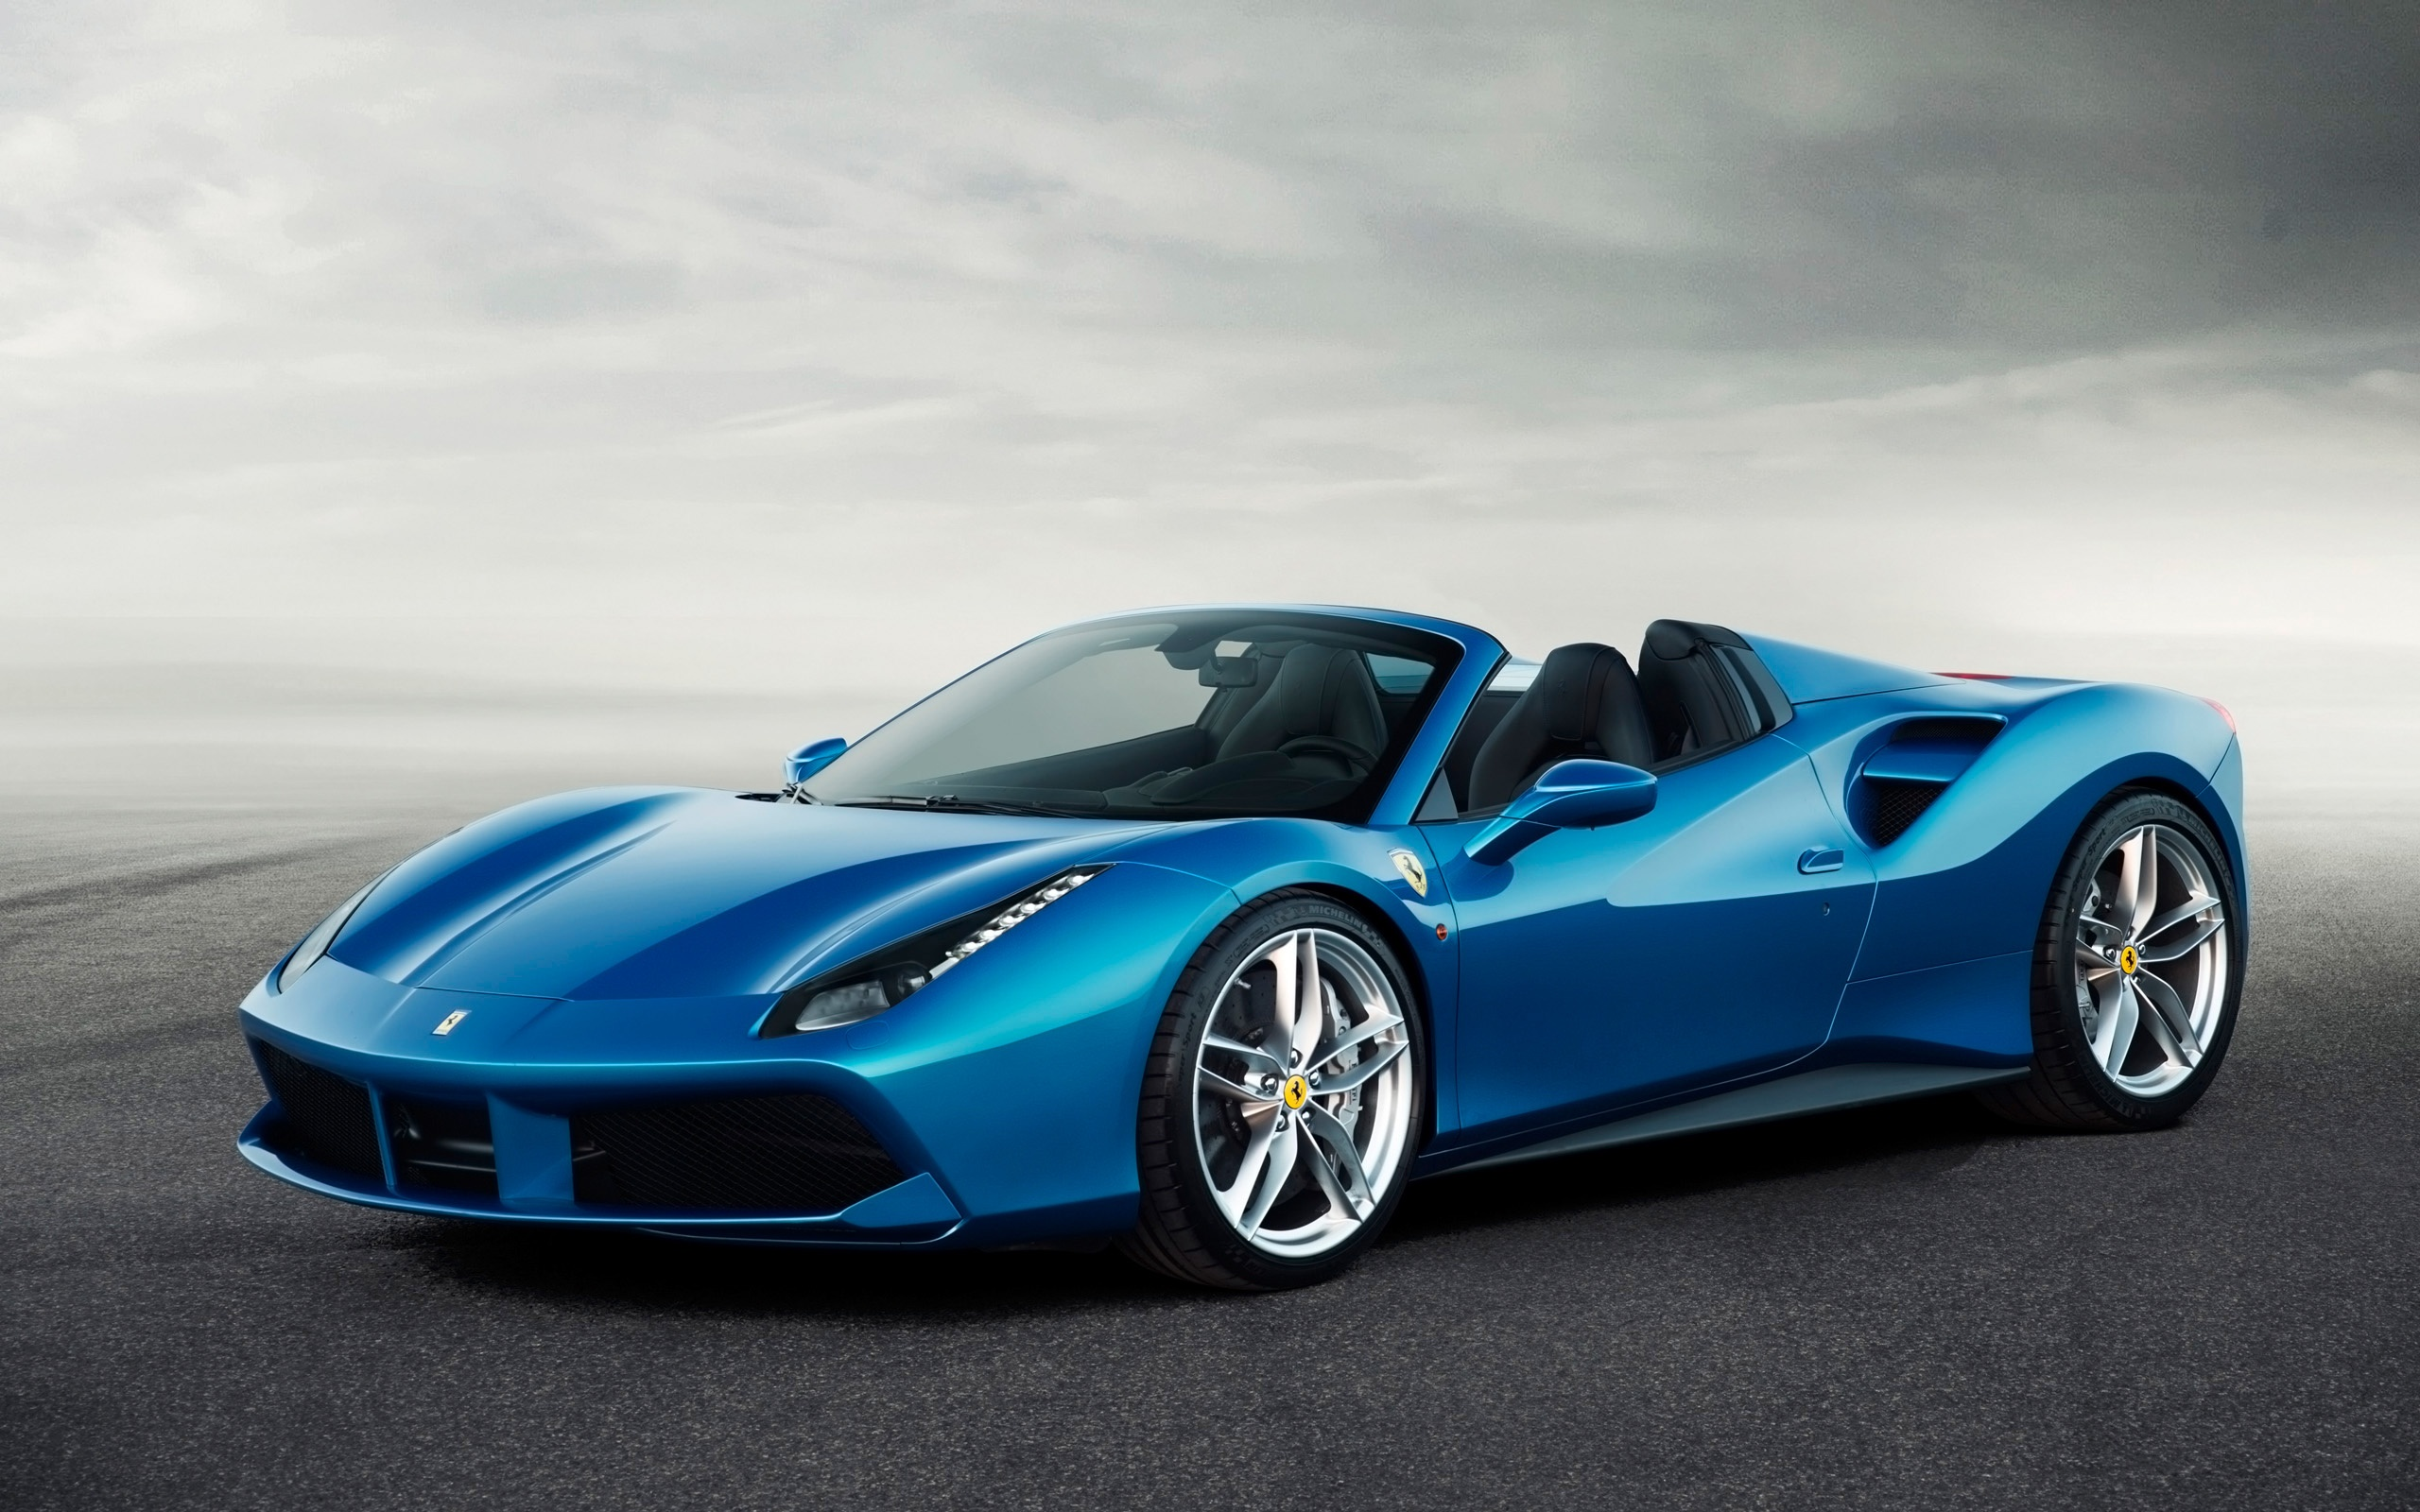 2016 Ferrari 488 Spider Wallpapers In Jpg Format For Free Download